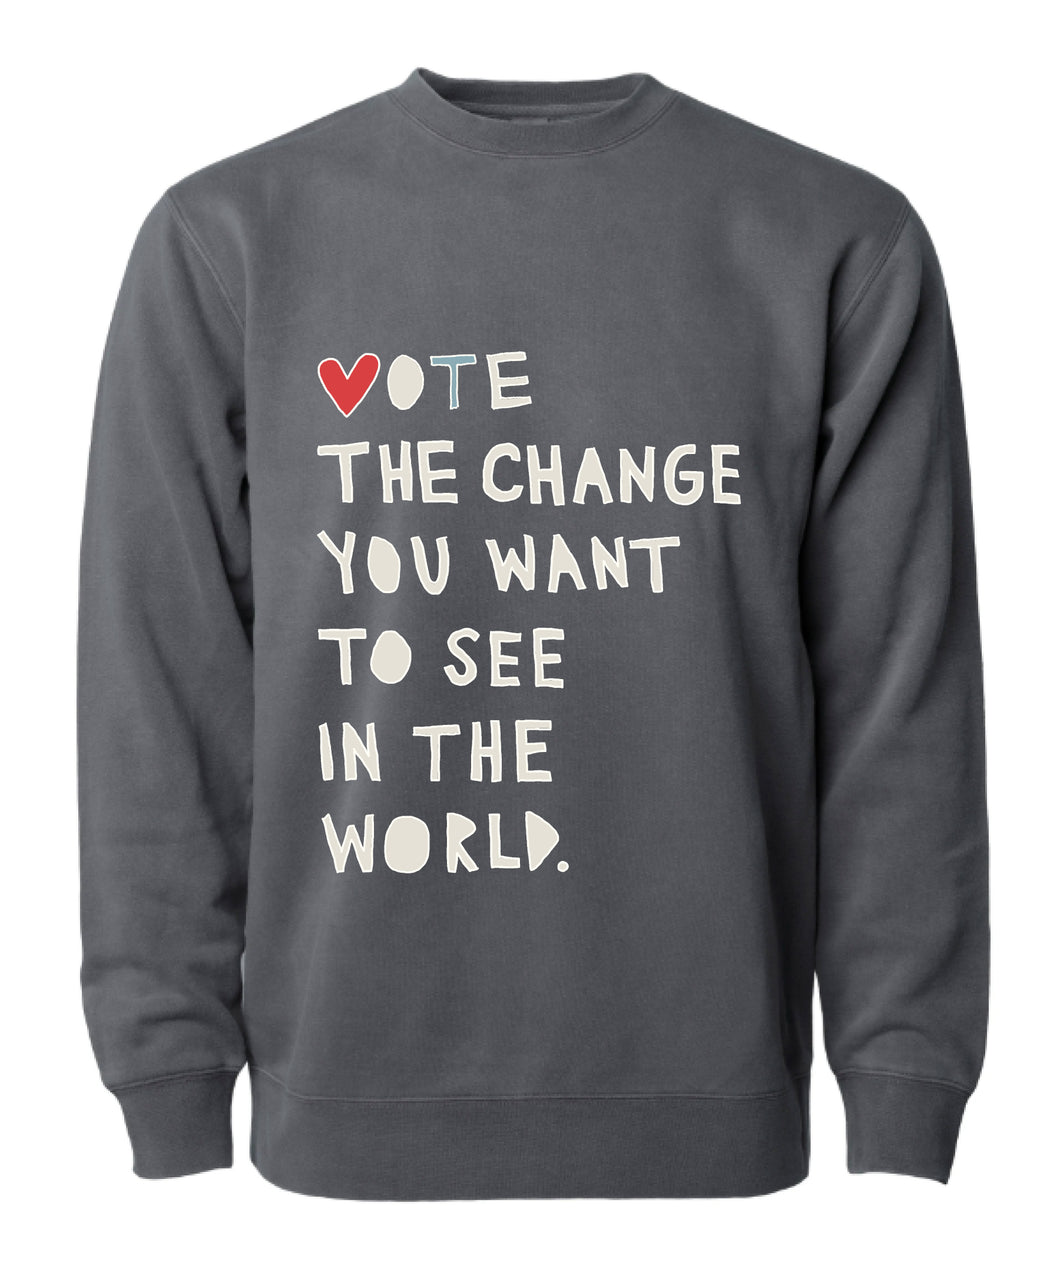 Vote the Change Sweatshirt